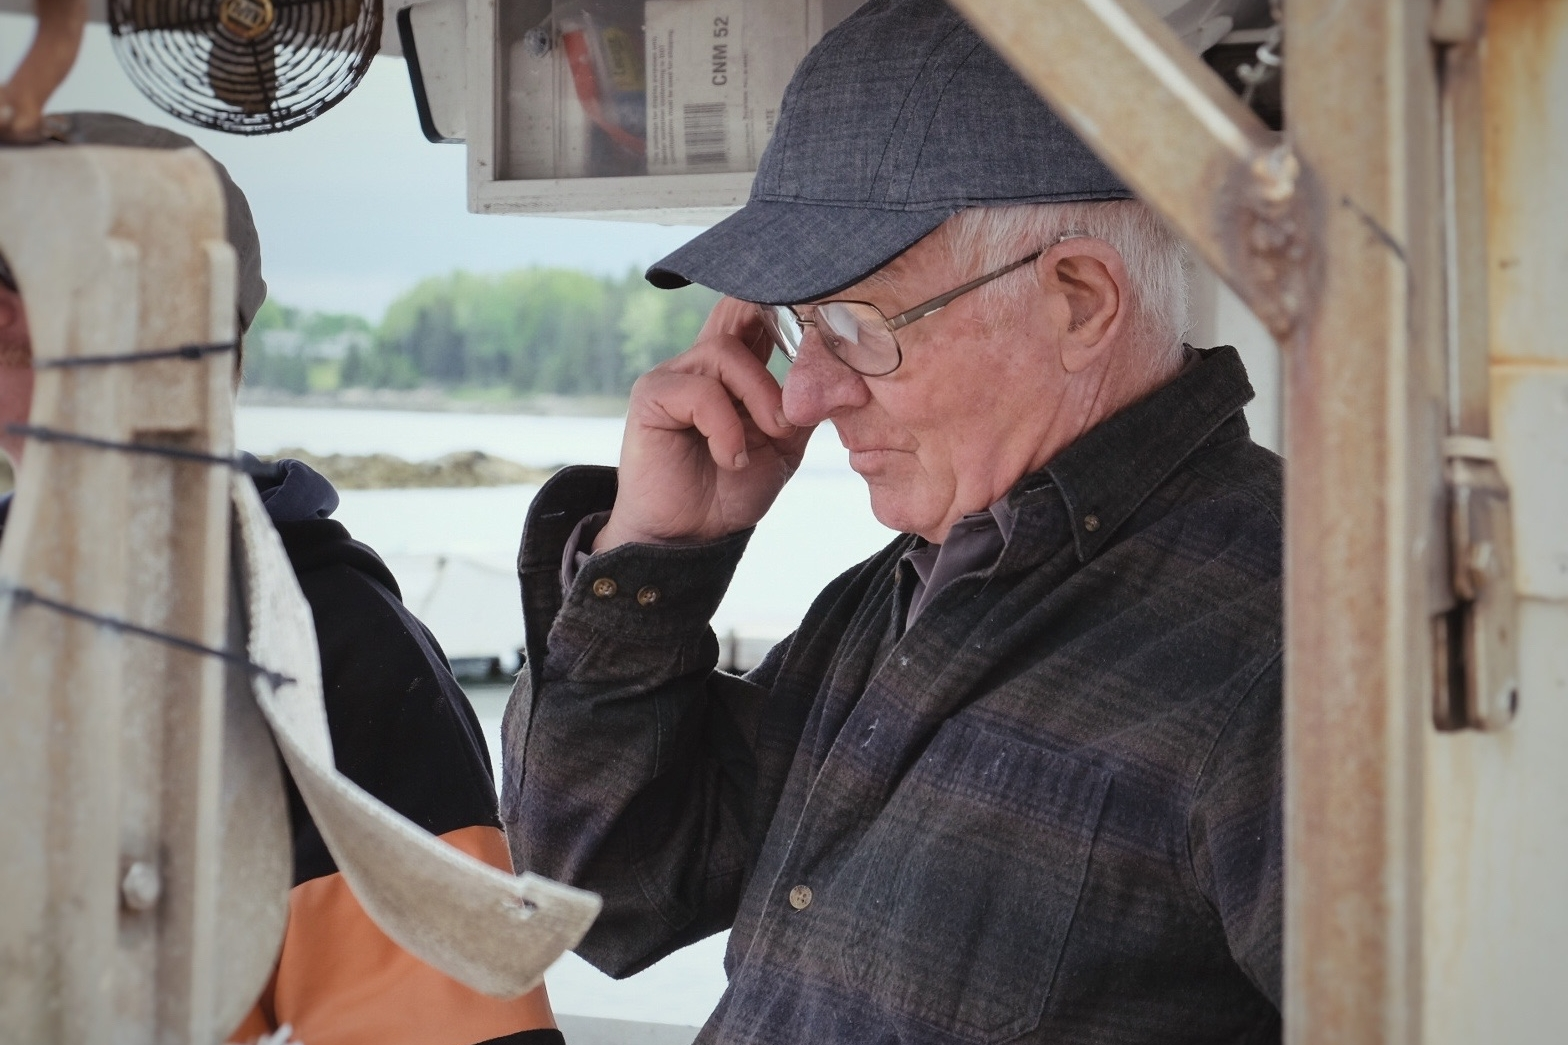 Chummy Rich - [Cliff Rich] is a fifth generation boat builder from Bernard, Maine.  He is making his acting debut as his own grandfather, as well as restoring the dory Cliff built for Art & Nan Kellam in 1949.